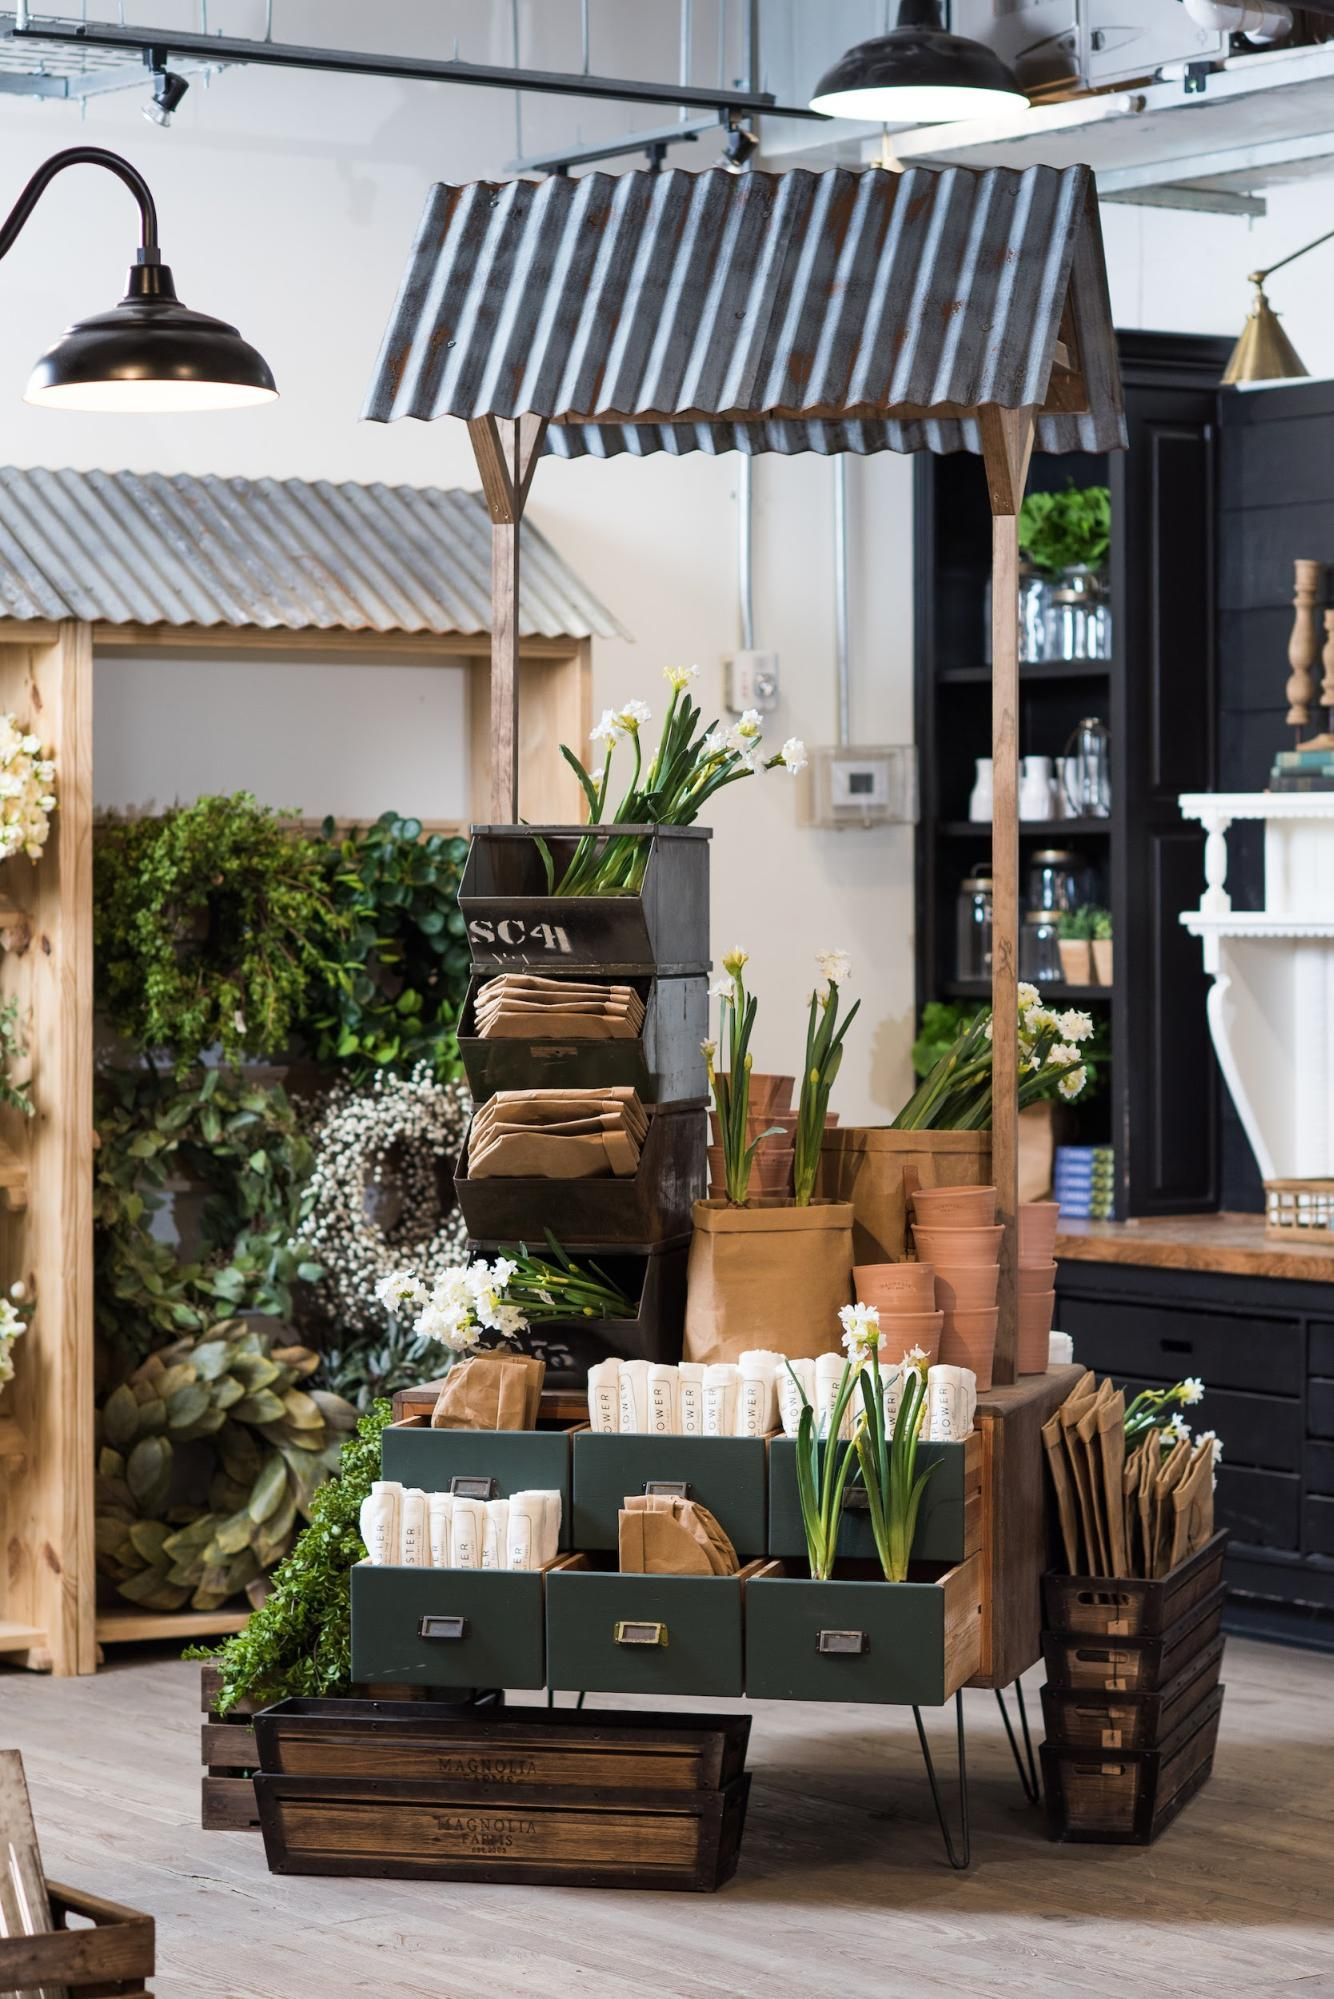 Spring at Retail store design, Farmers market display